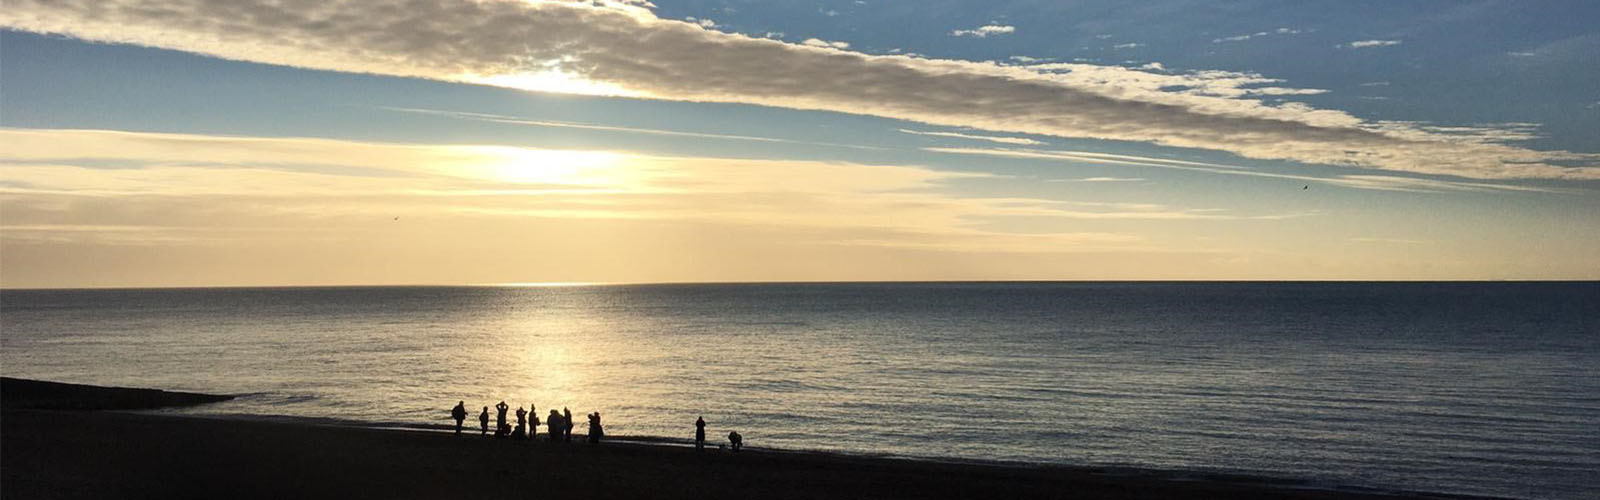 Silhouette of WOW members standing on the sea front in Hastings